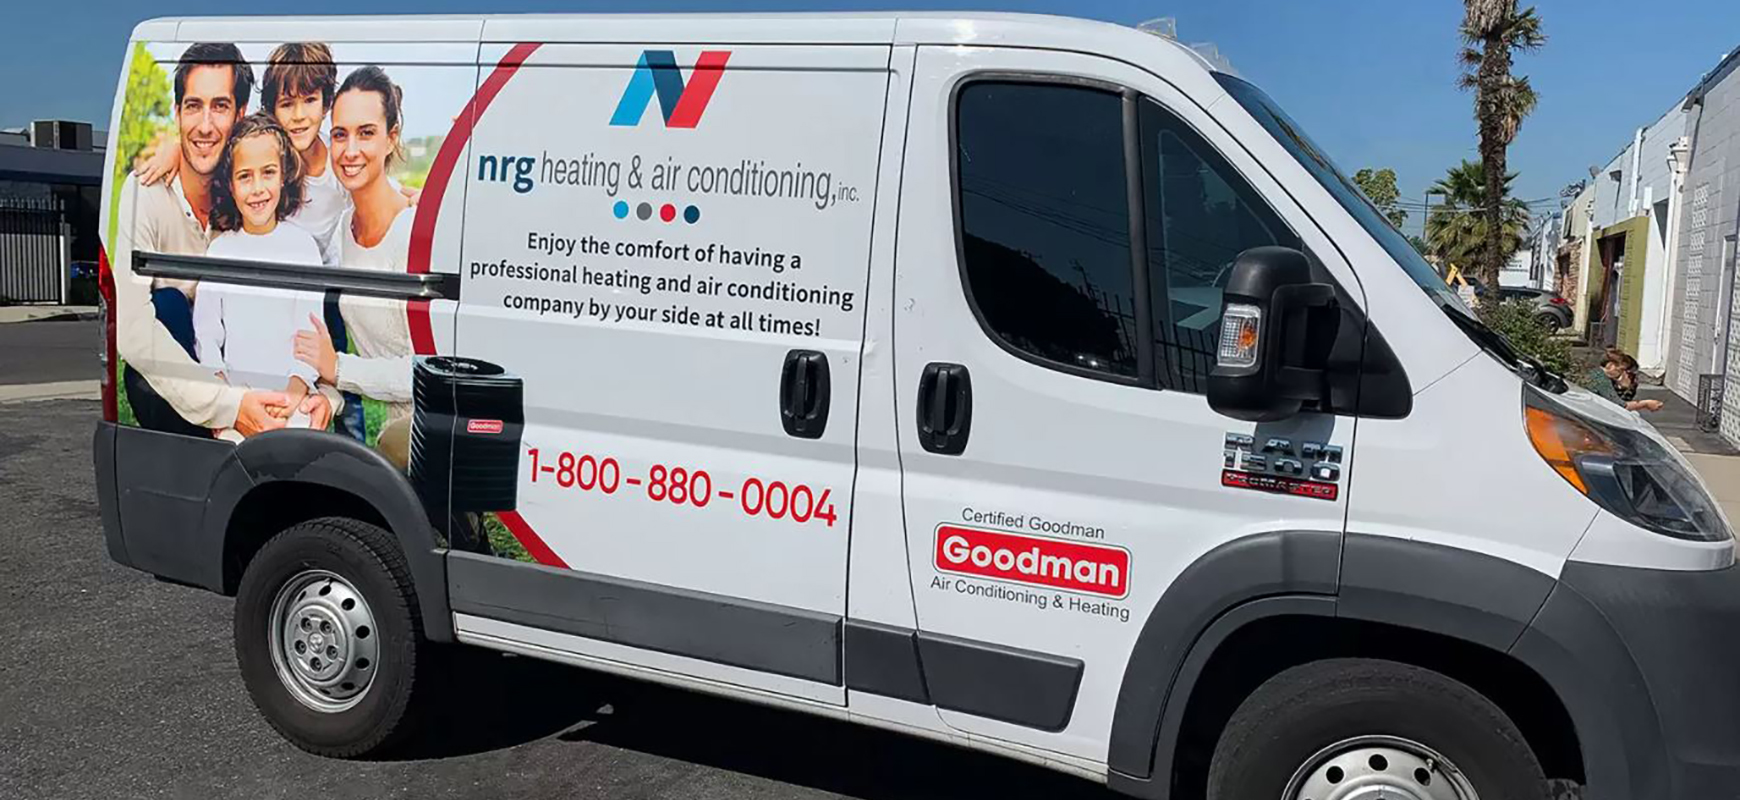 NRG van wrap in a promotional style made of opaque vinyl